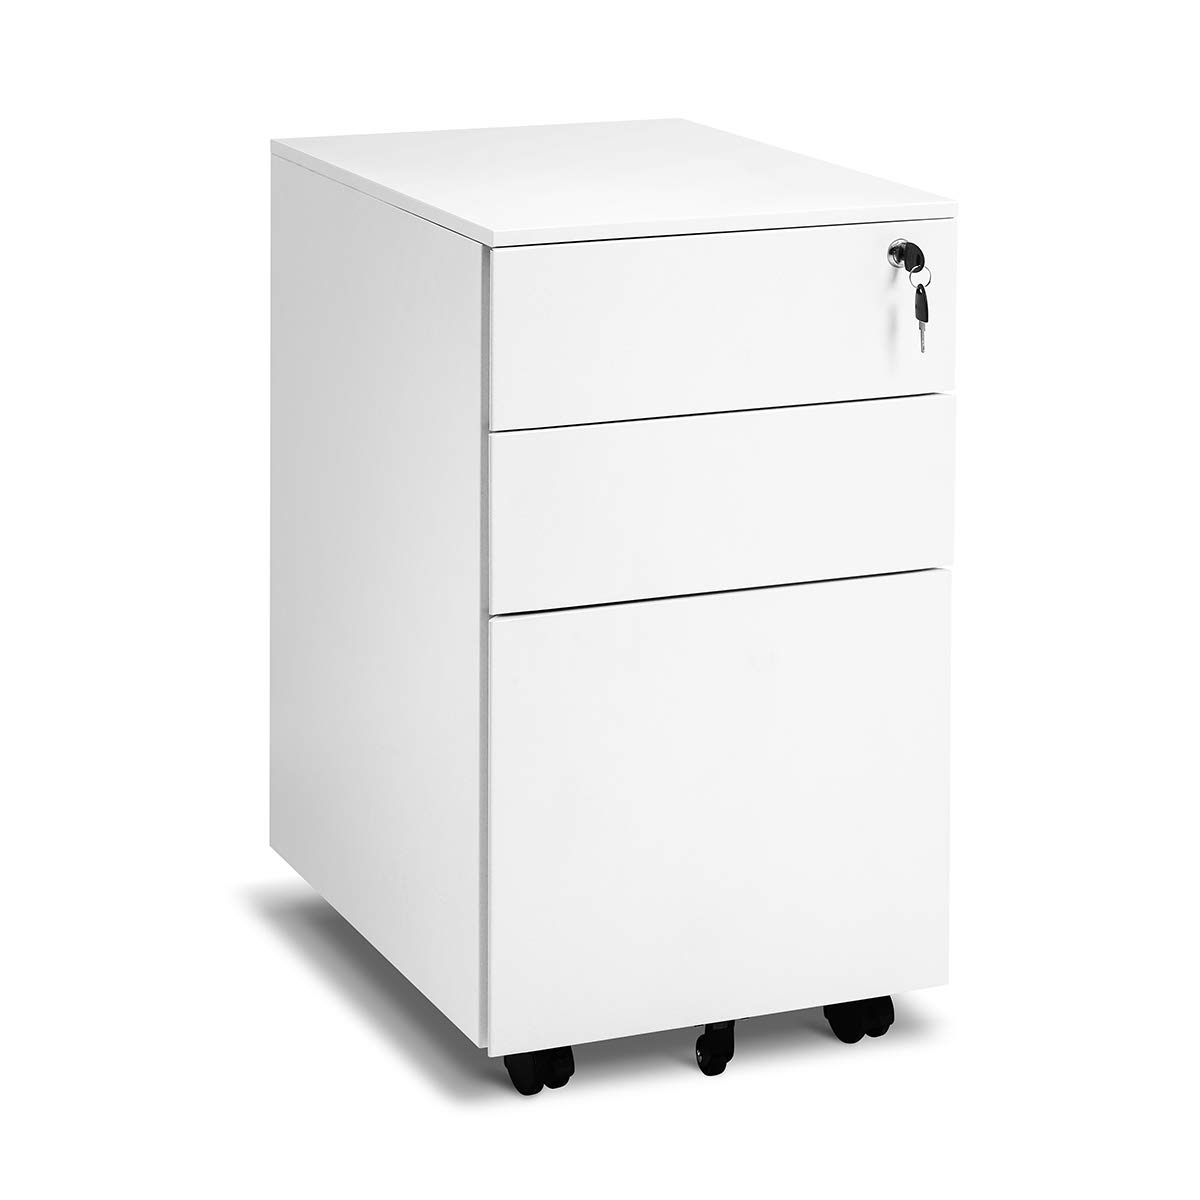 Locking File Cabinet Rolling Metal Filing Cabinet 3 Drawer Fully Assembled Office Pedestal Files Except Wheel(White C) by Superday